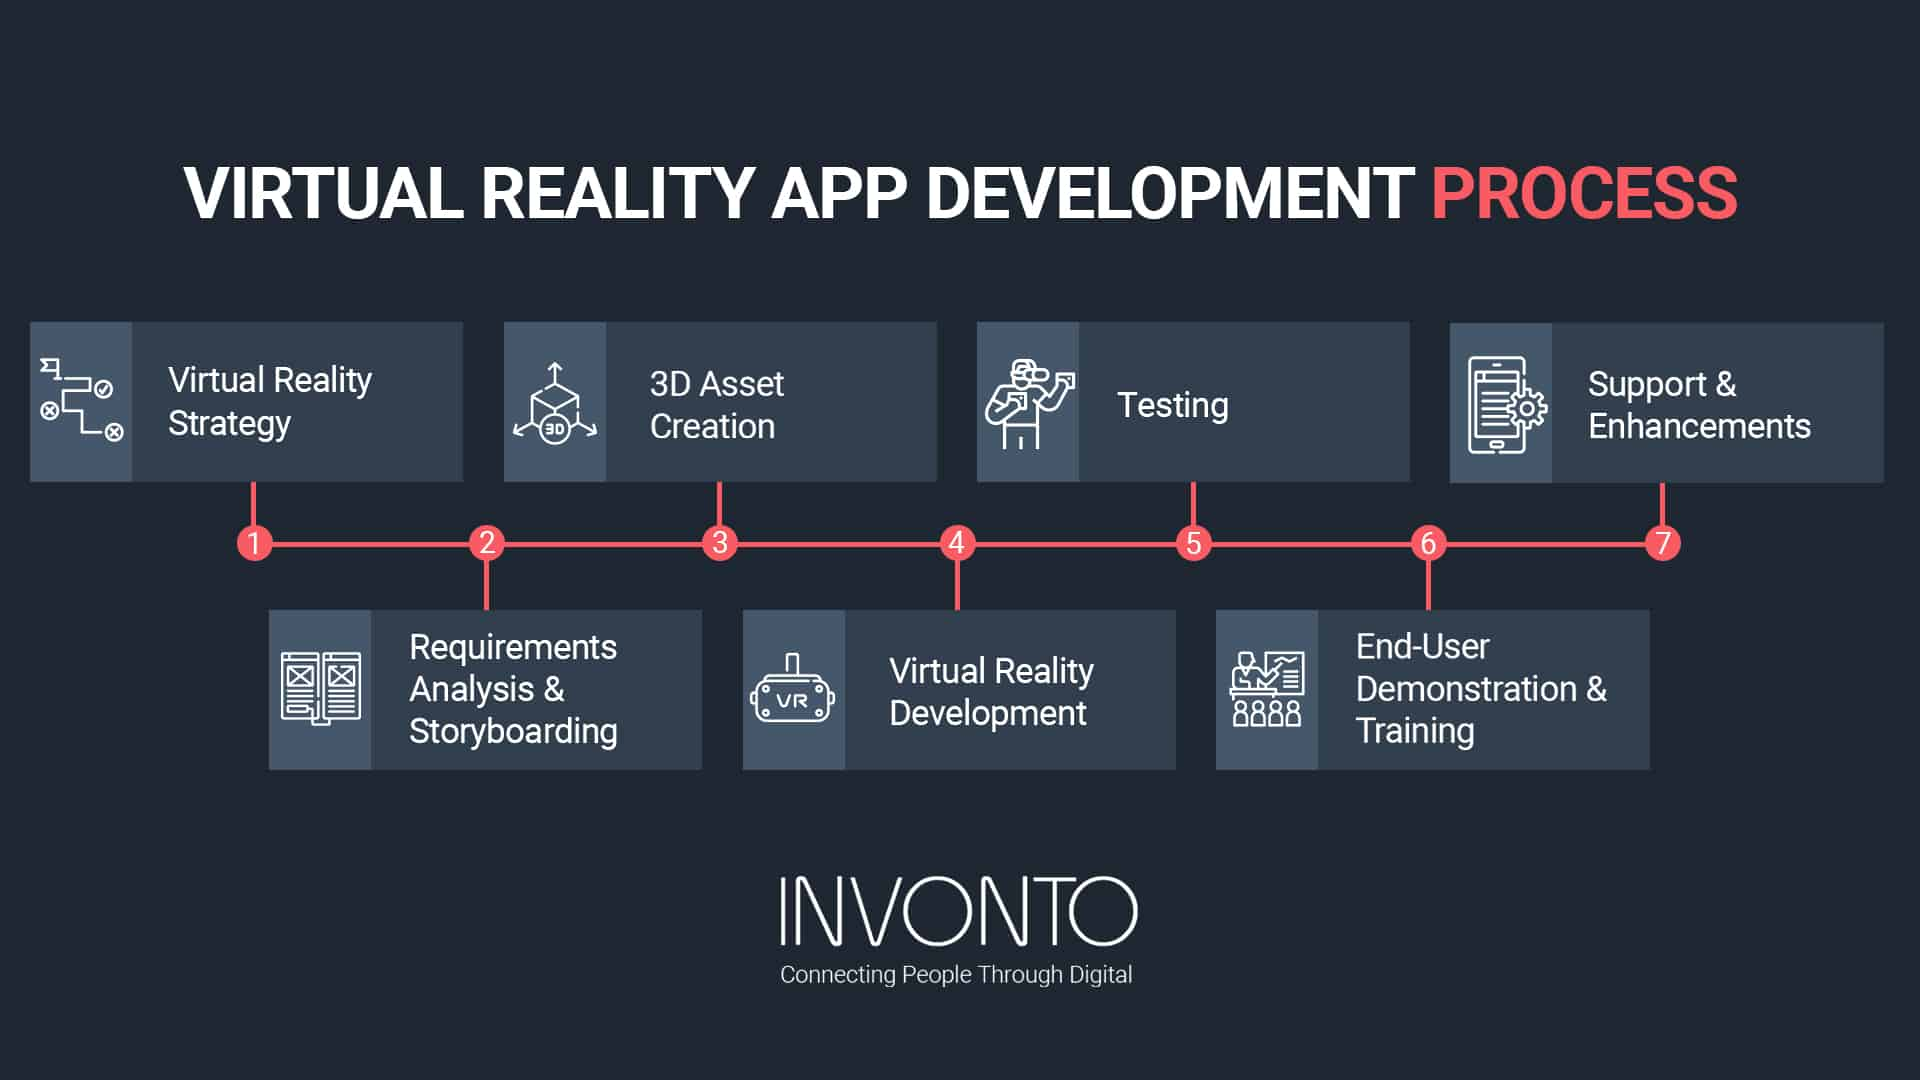 virtual reality app development process infographic